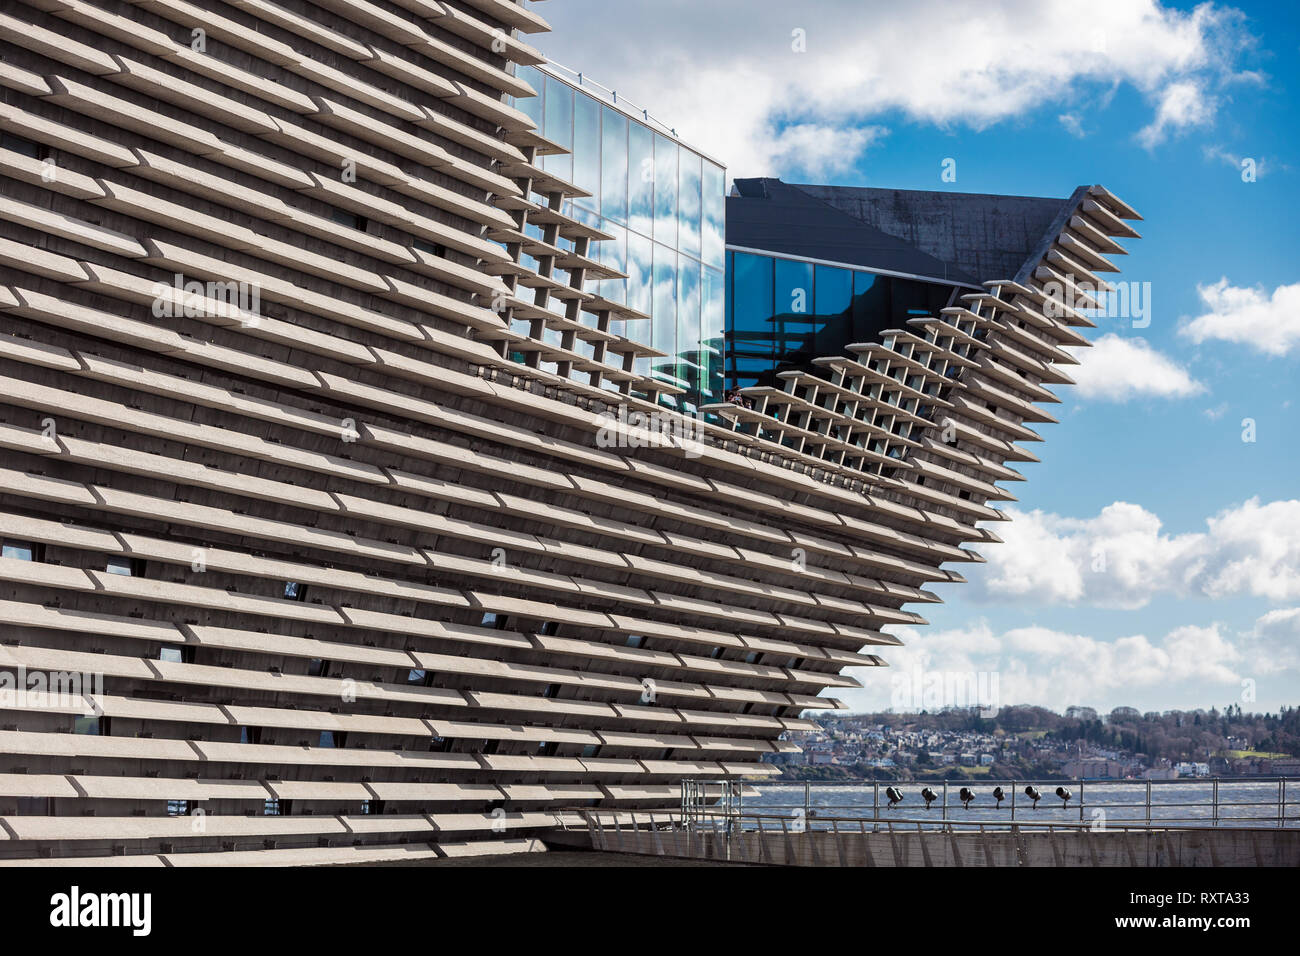 The ship like design of the new V&A Museum in Dundee designed by famous Japanese architect Kengo Kuma - Stock Image